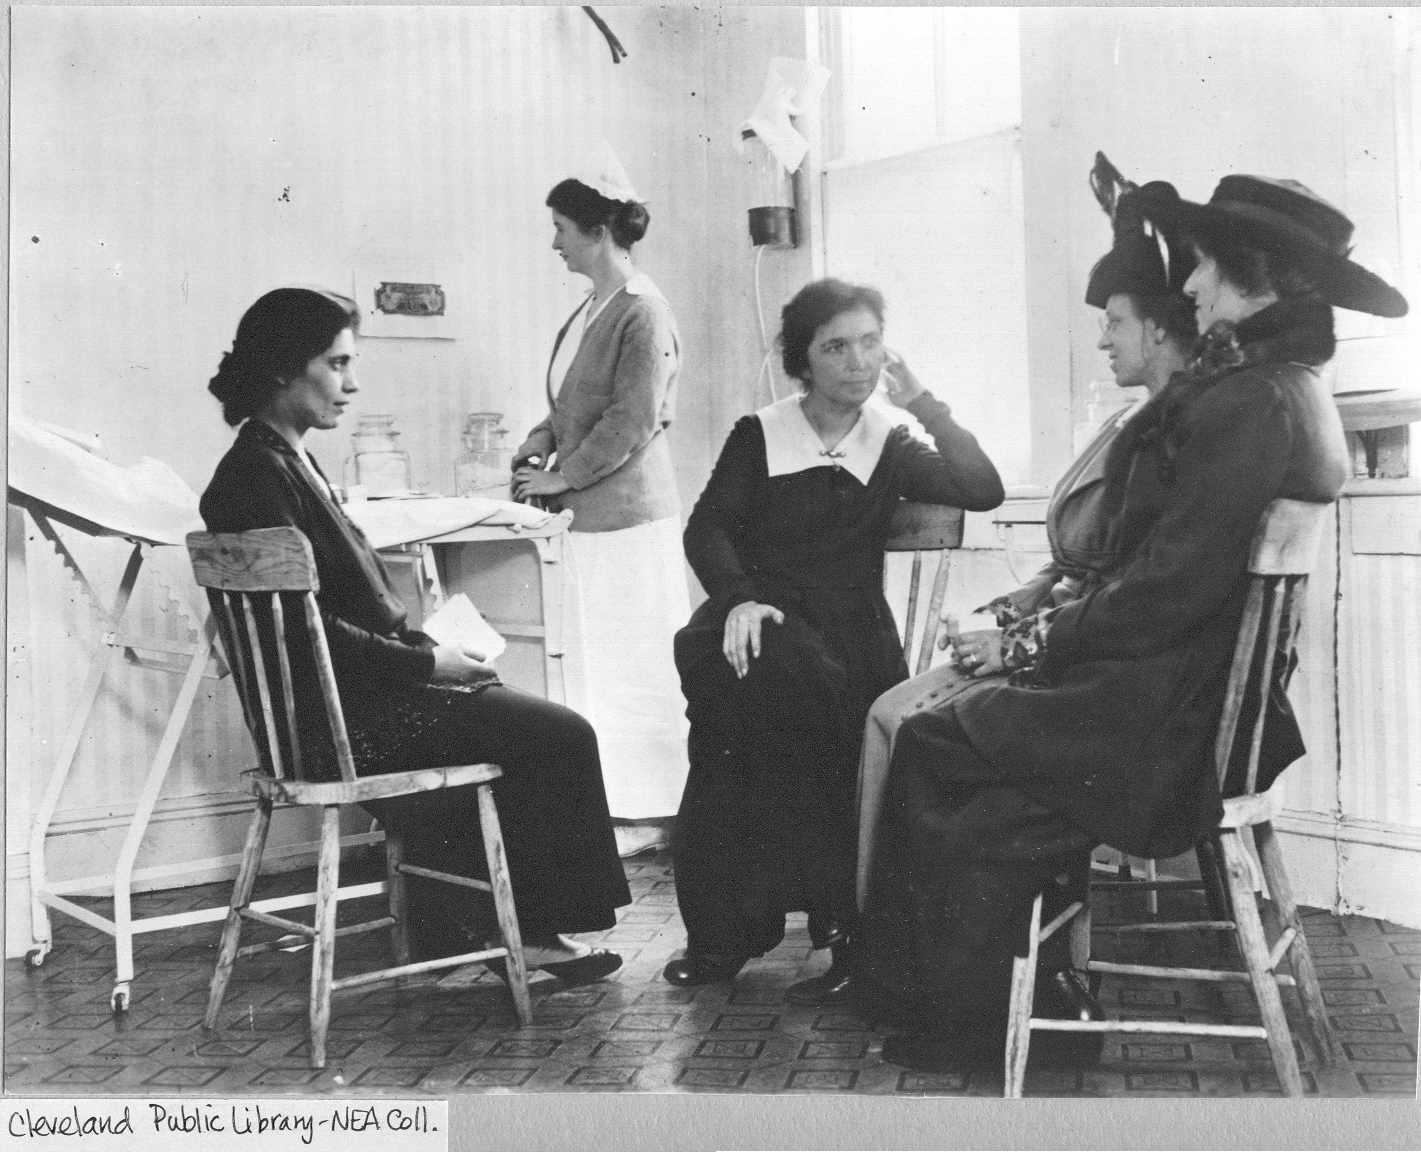 Sanger, her sister Ethel Byrne and Yiddish interpreter Fania Mindell counseling clients.